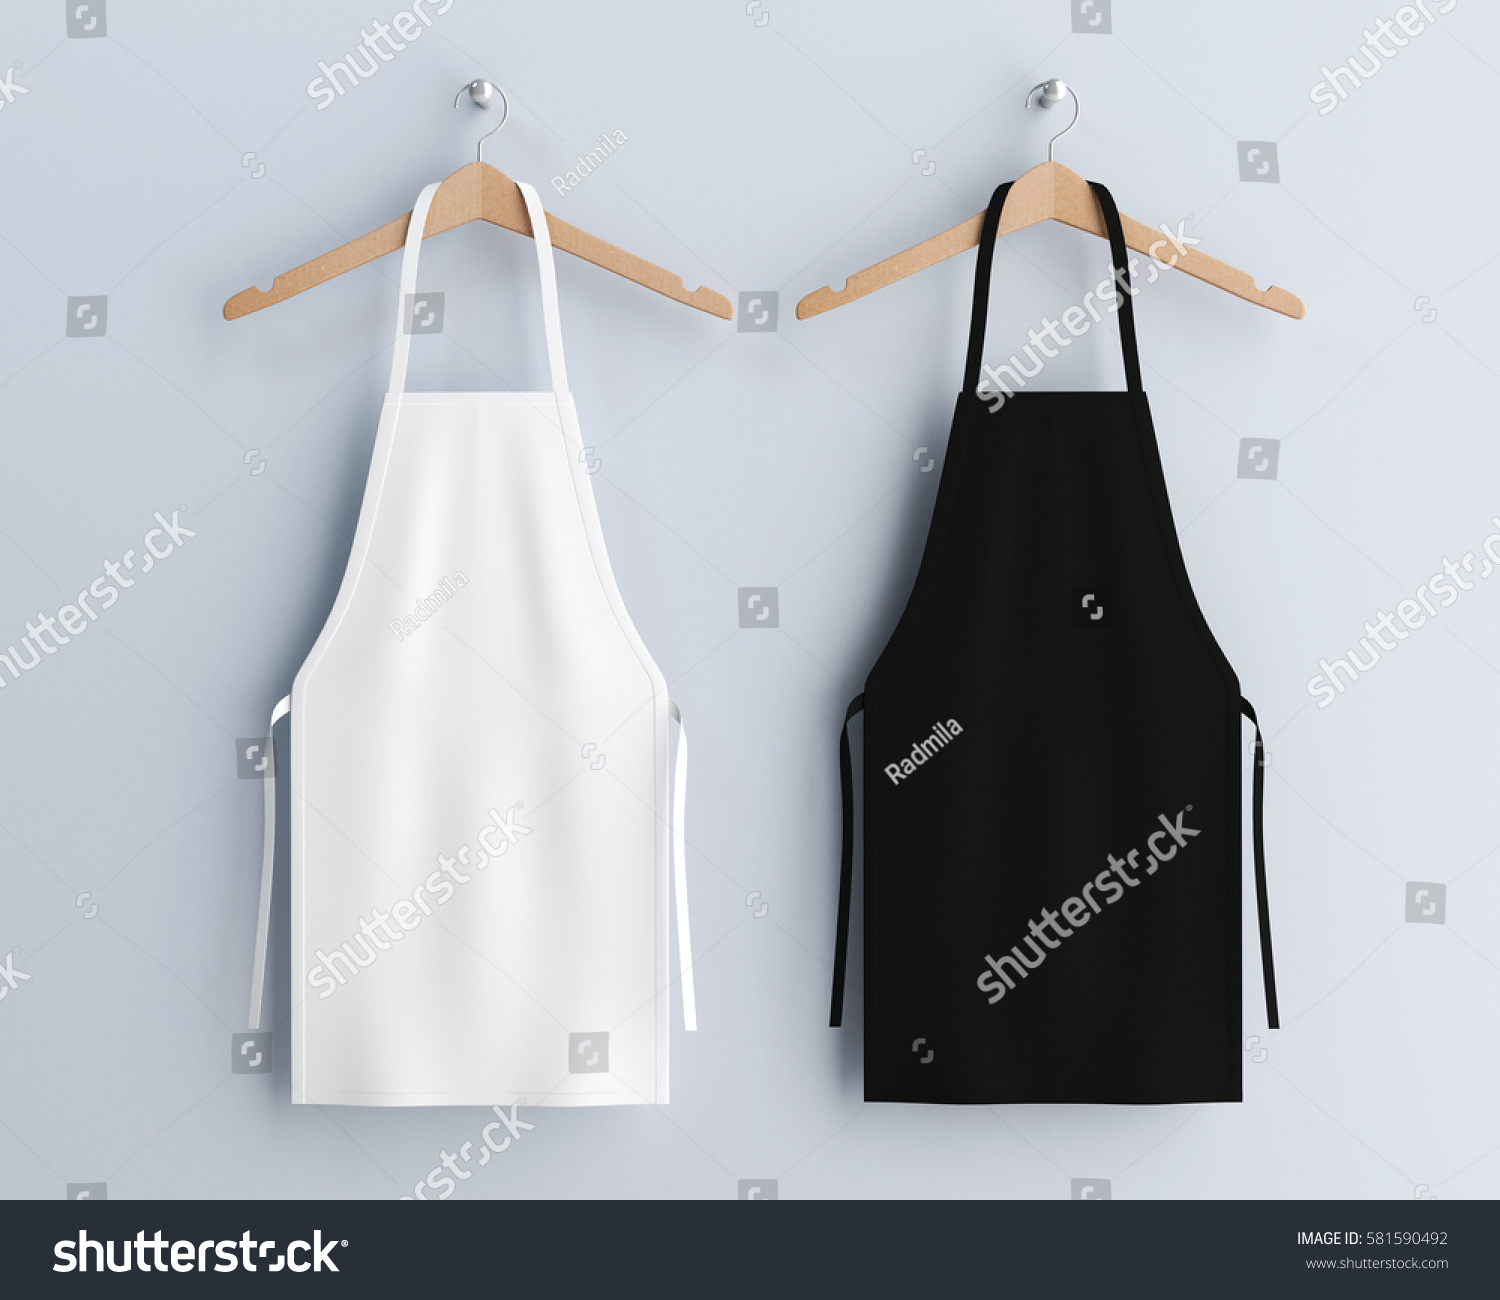 White apron locations